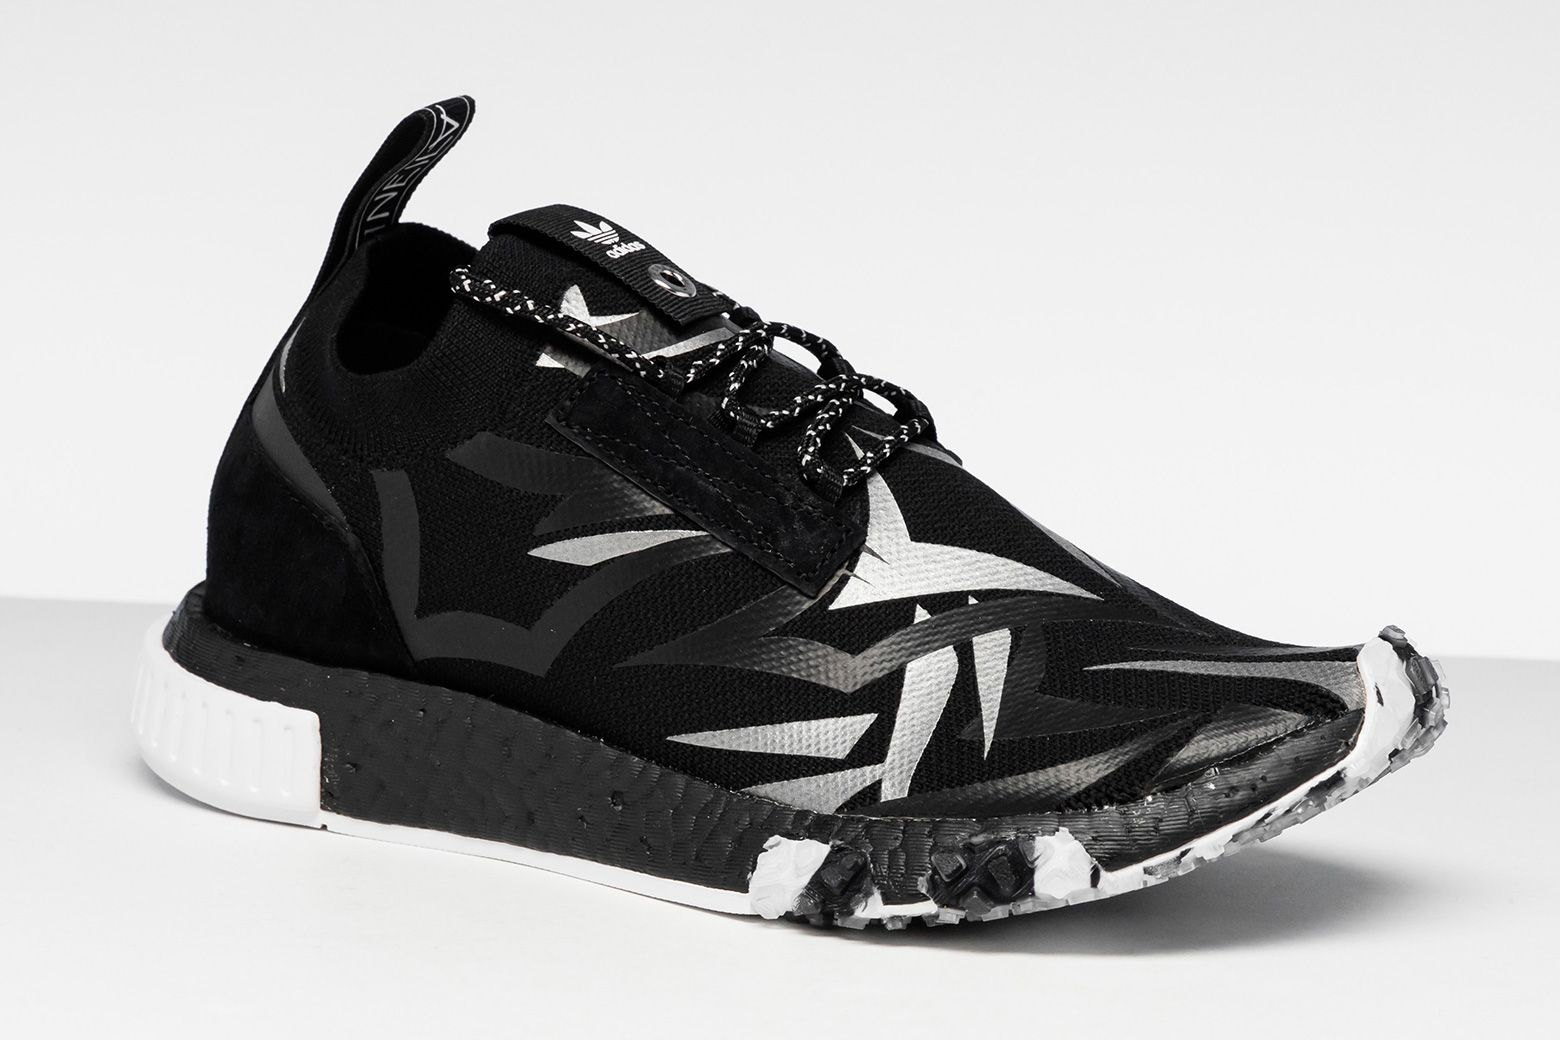 uk availability 2703a 7b888 adidas NMD Racer Juice - Size 4.5 in 2019 | adidas NMD ...